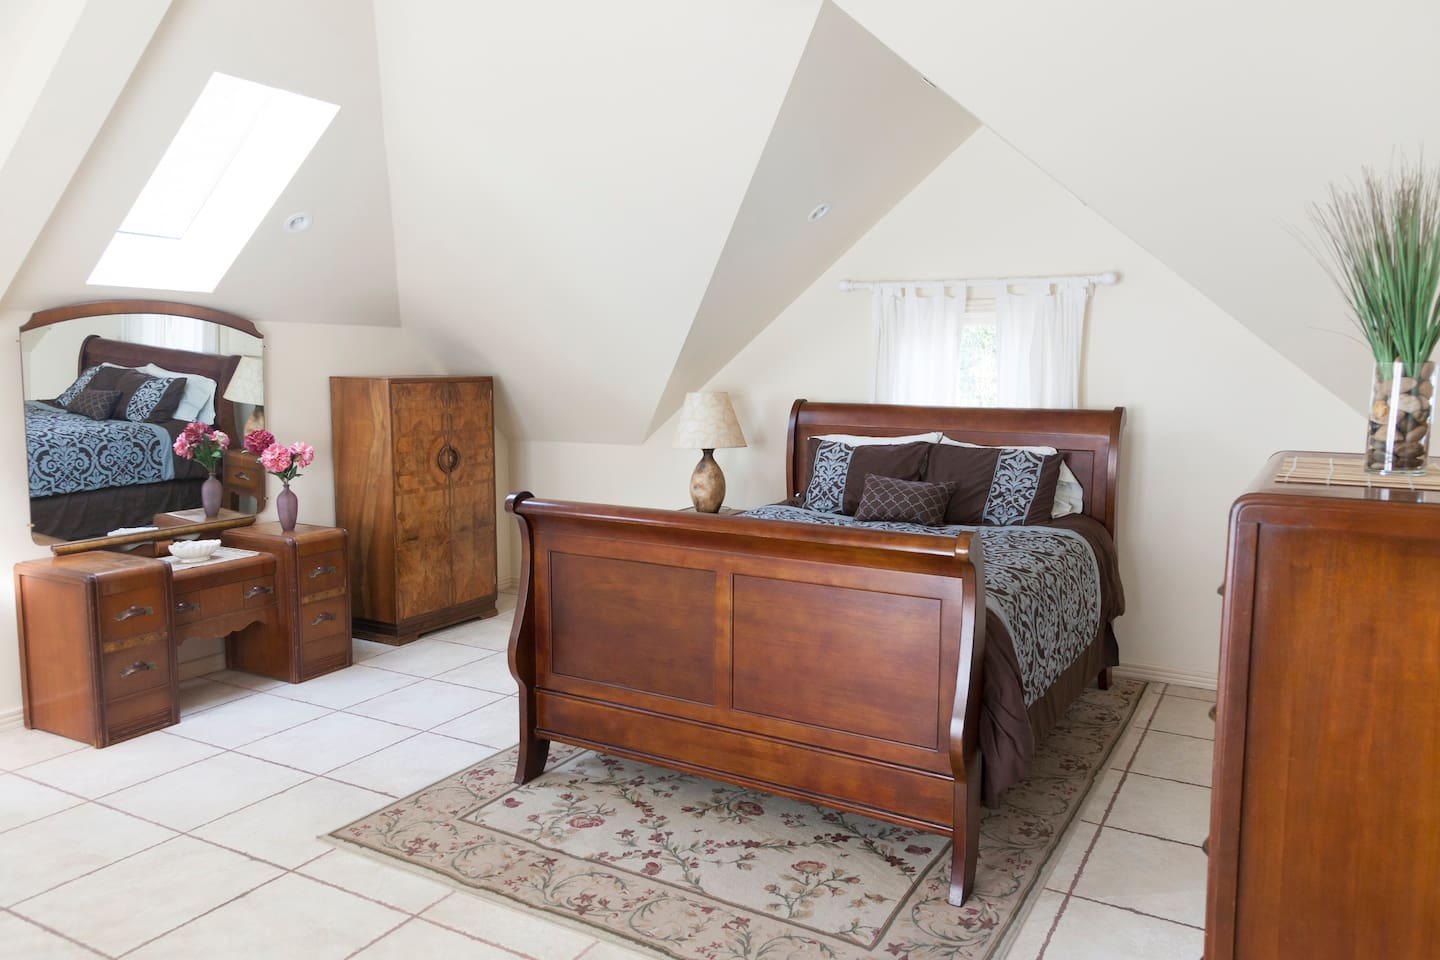 The room is spacious and features a queen bed, private bathroom, sitting area, private entrance, and balcony.